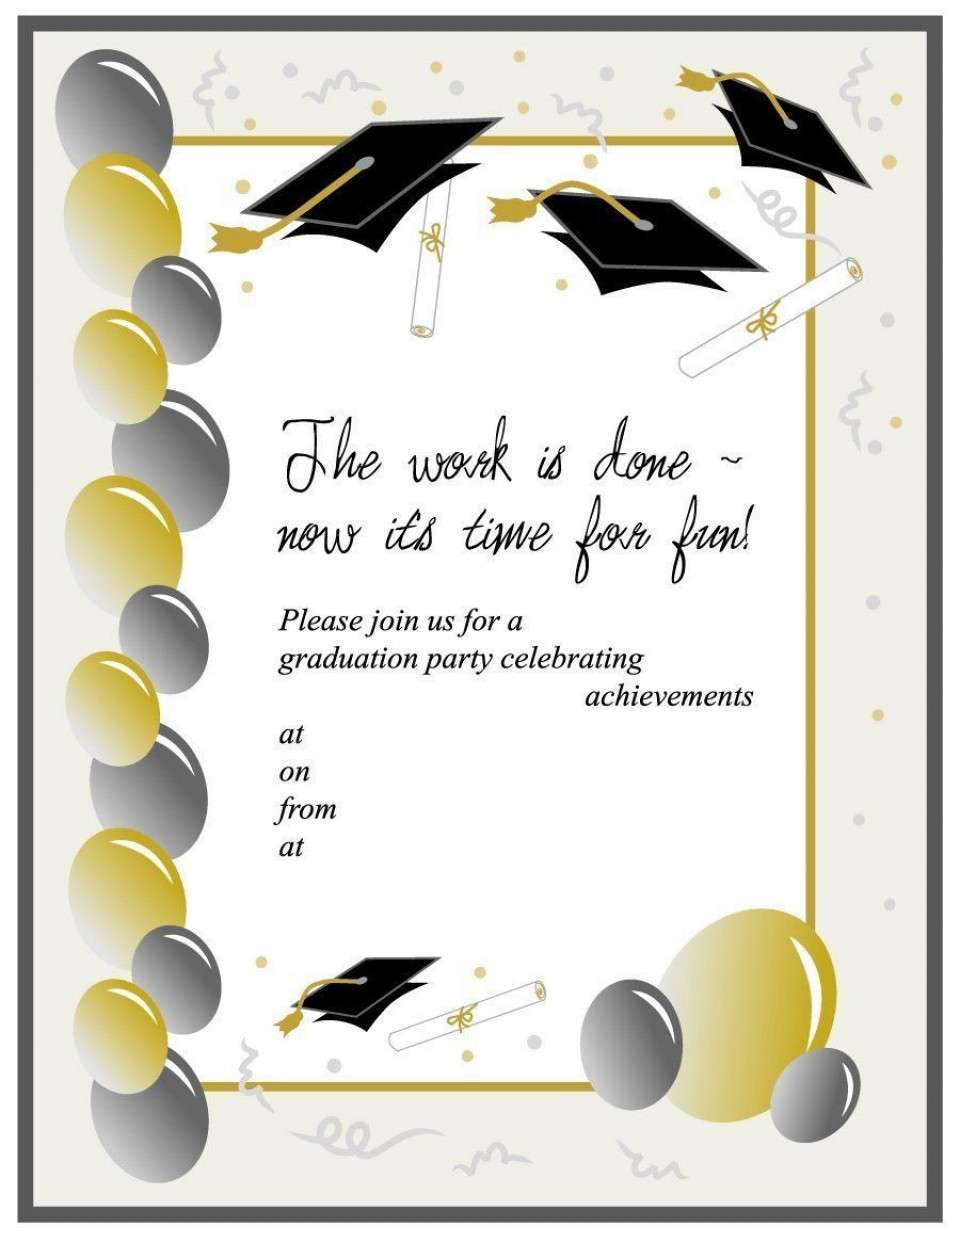 006 Staggering Microsoft Word Graduation Invitation Template Example  Party960